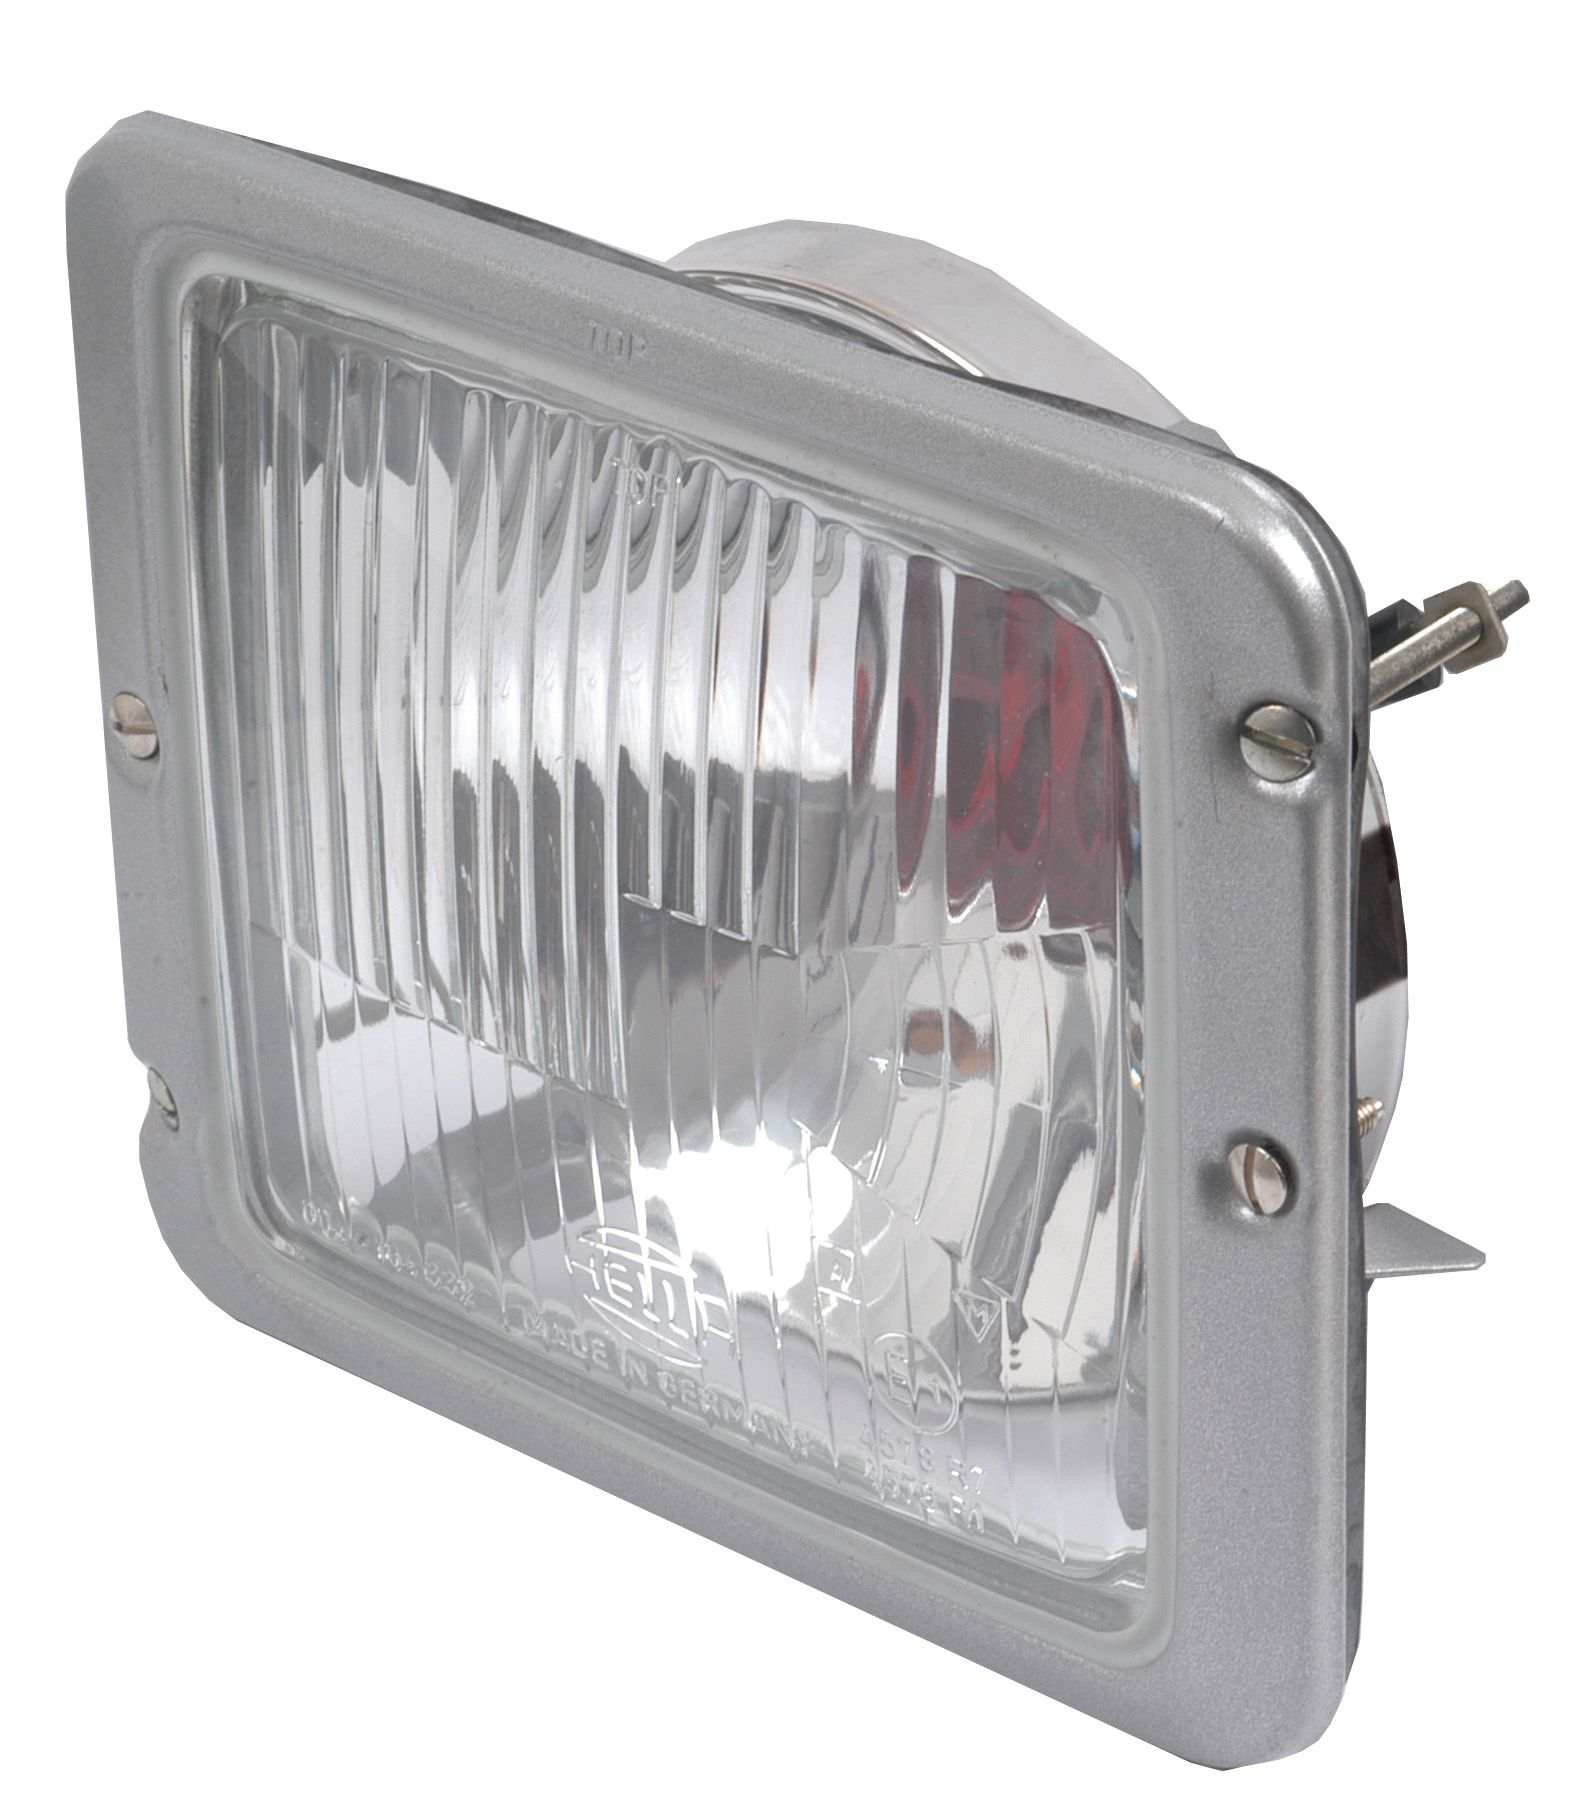 Mercedes benz lighting spare parts buy any part for Mercedes benz parts online uk